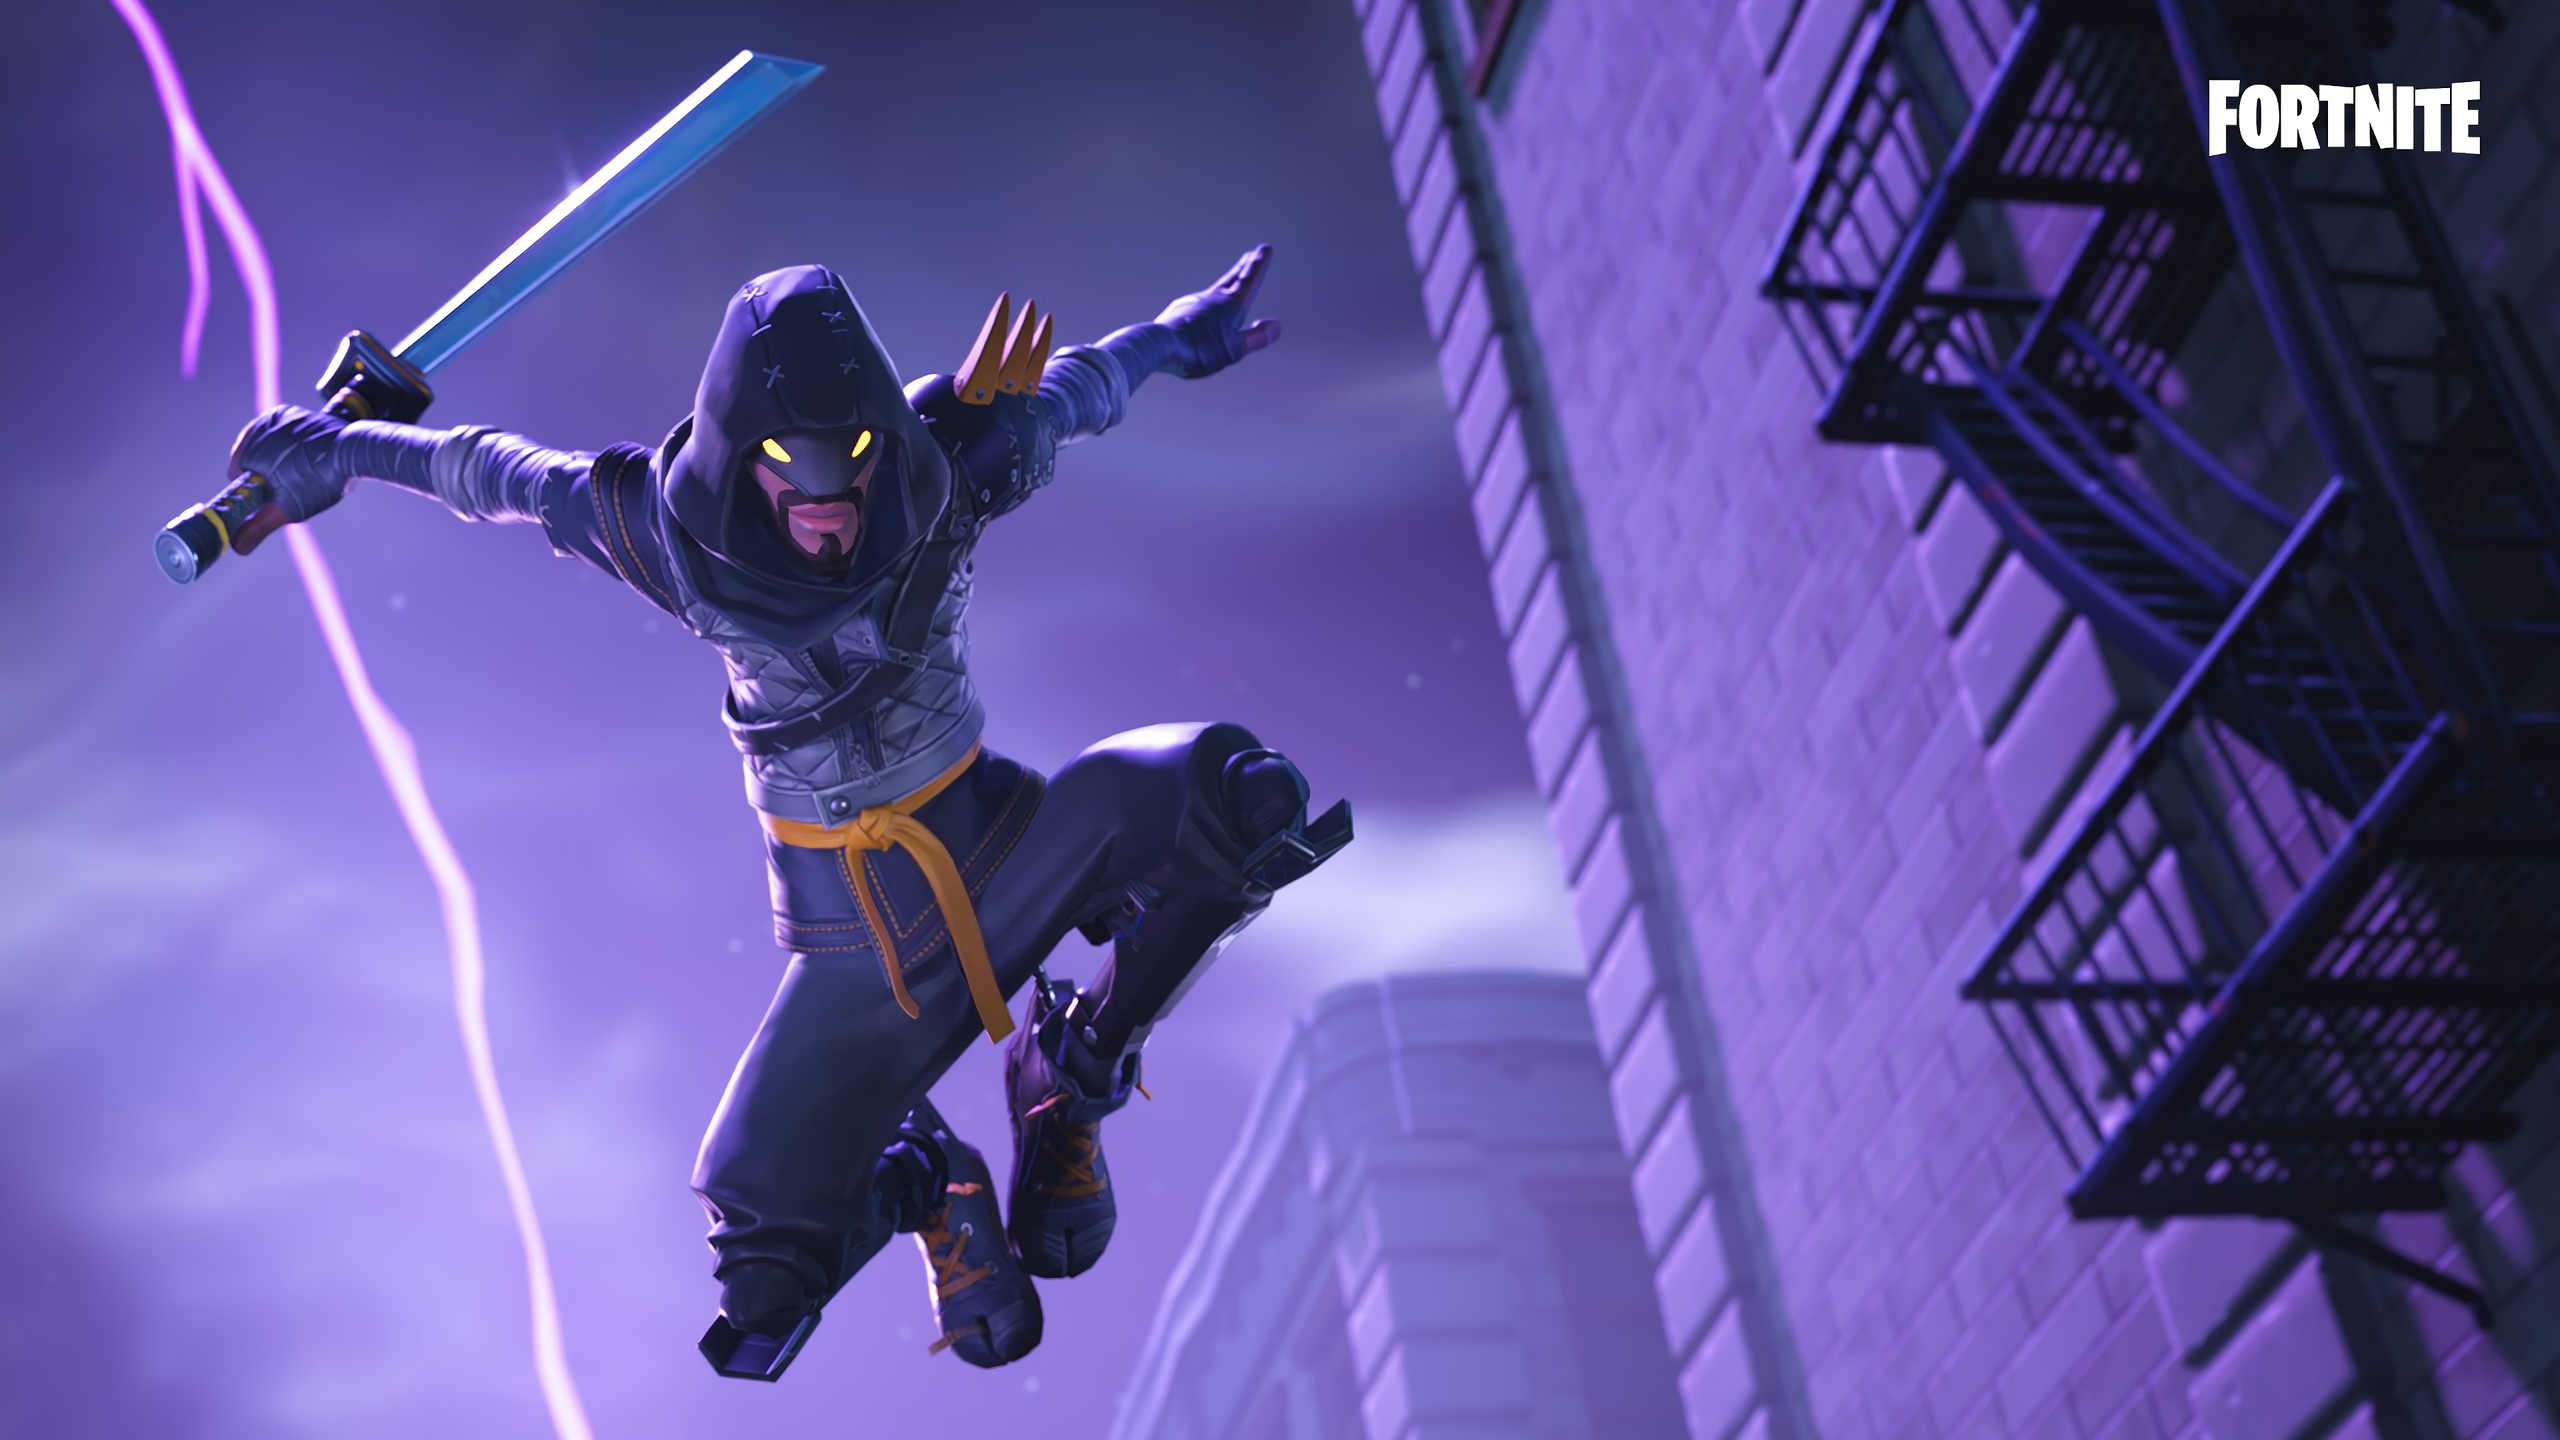 2560x1440 Fortnite Mythic Cloaked Star Ninja 1440p